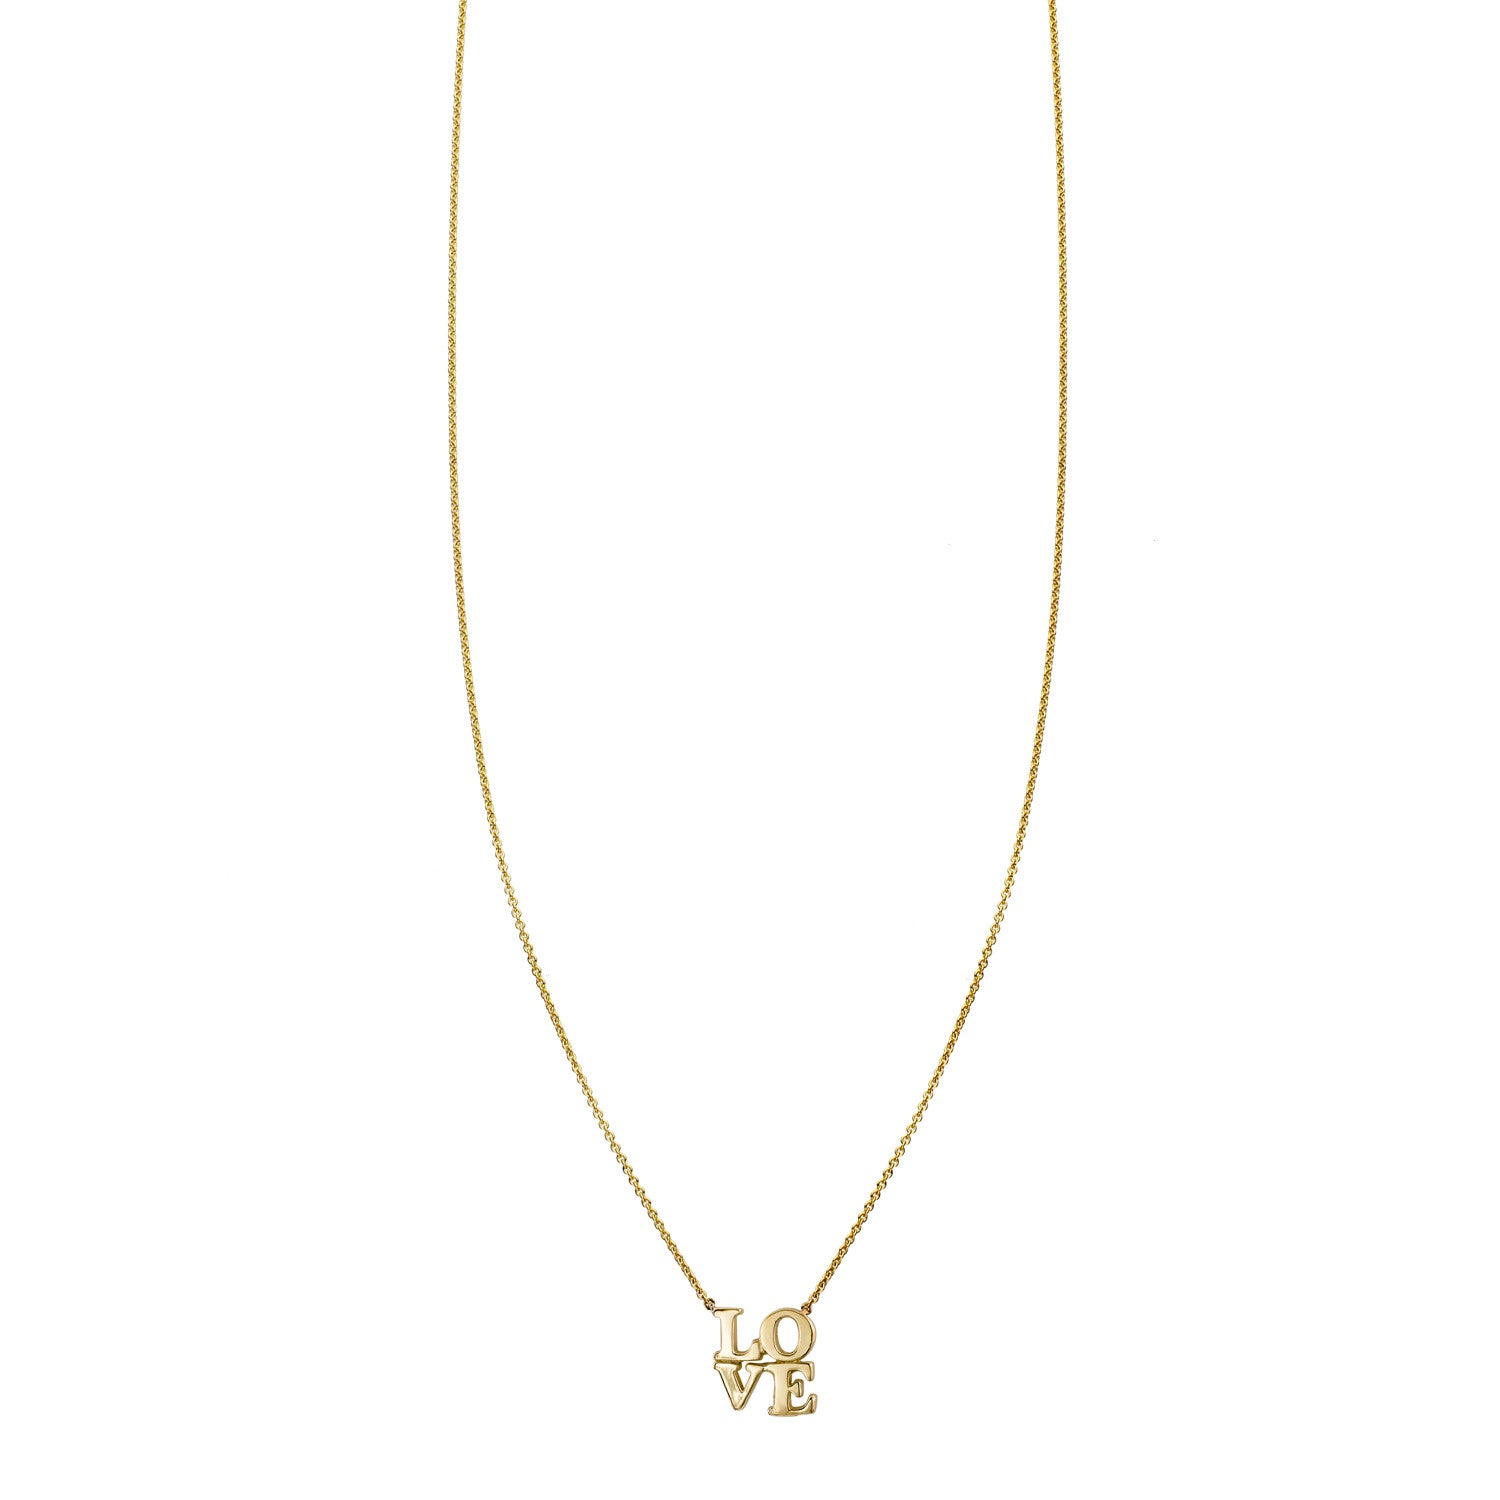 Image of a Block Love Gold Necklace